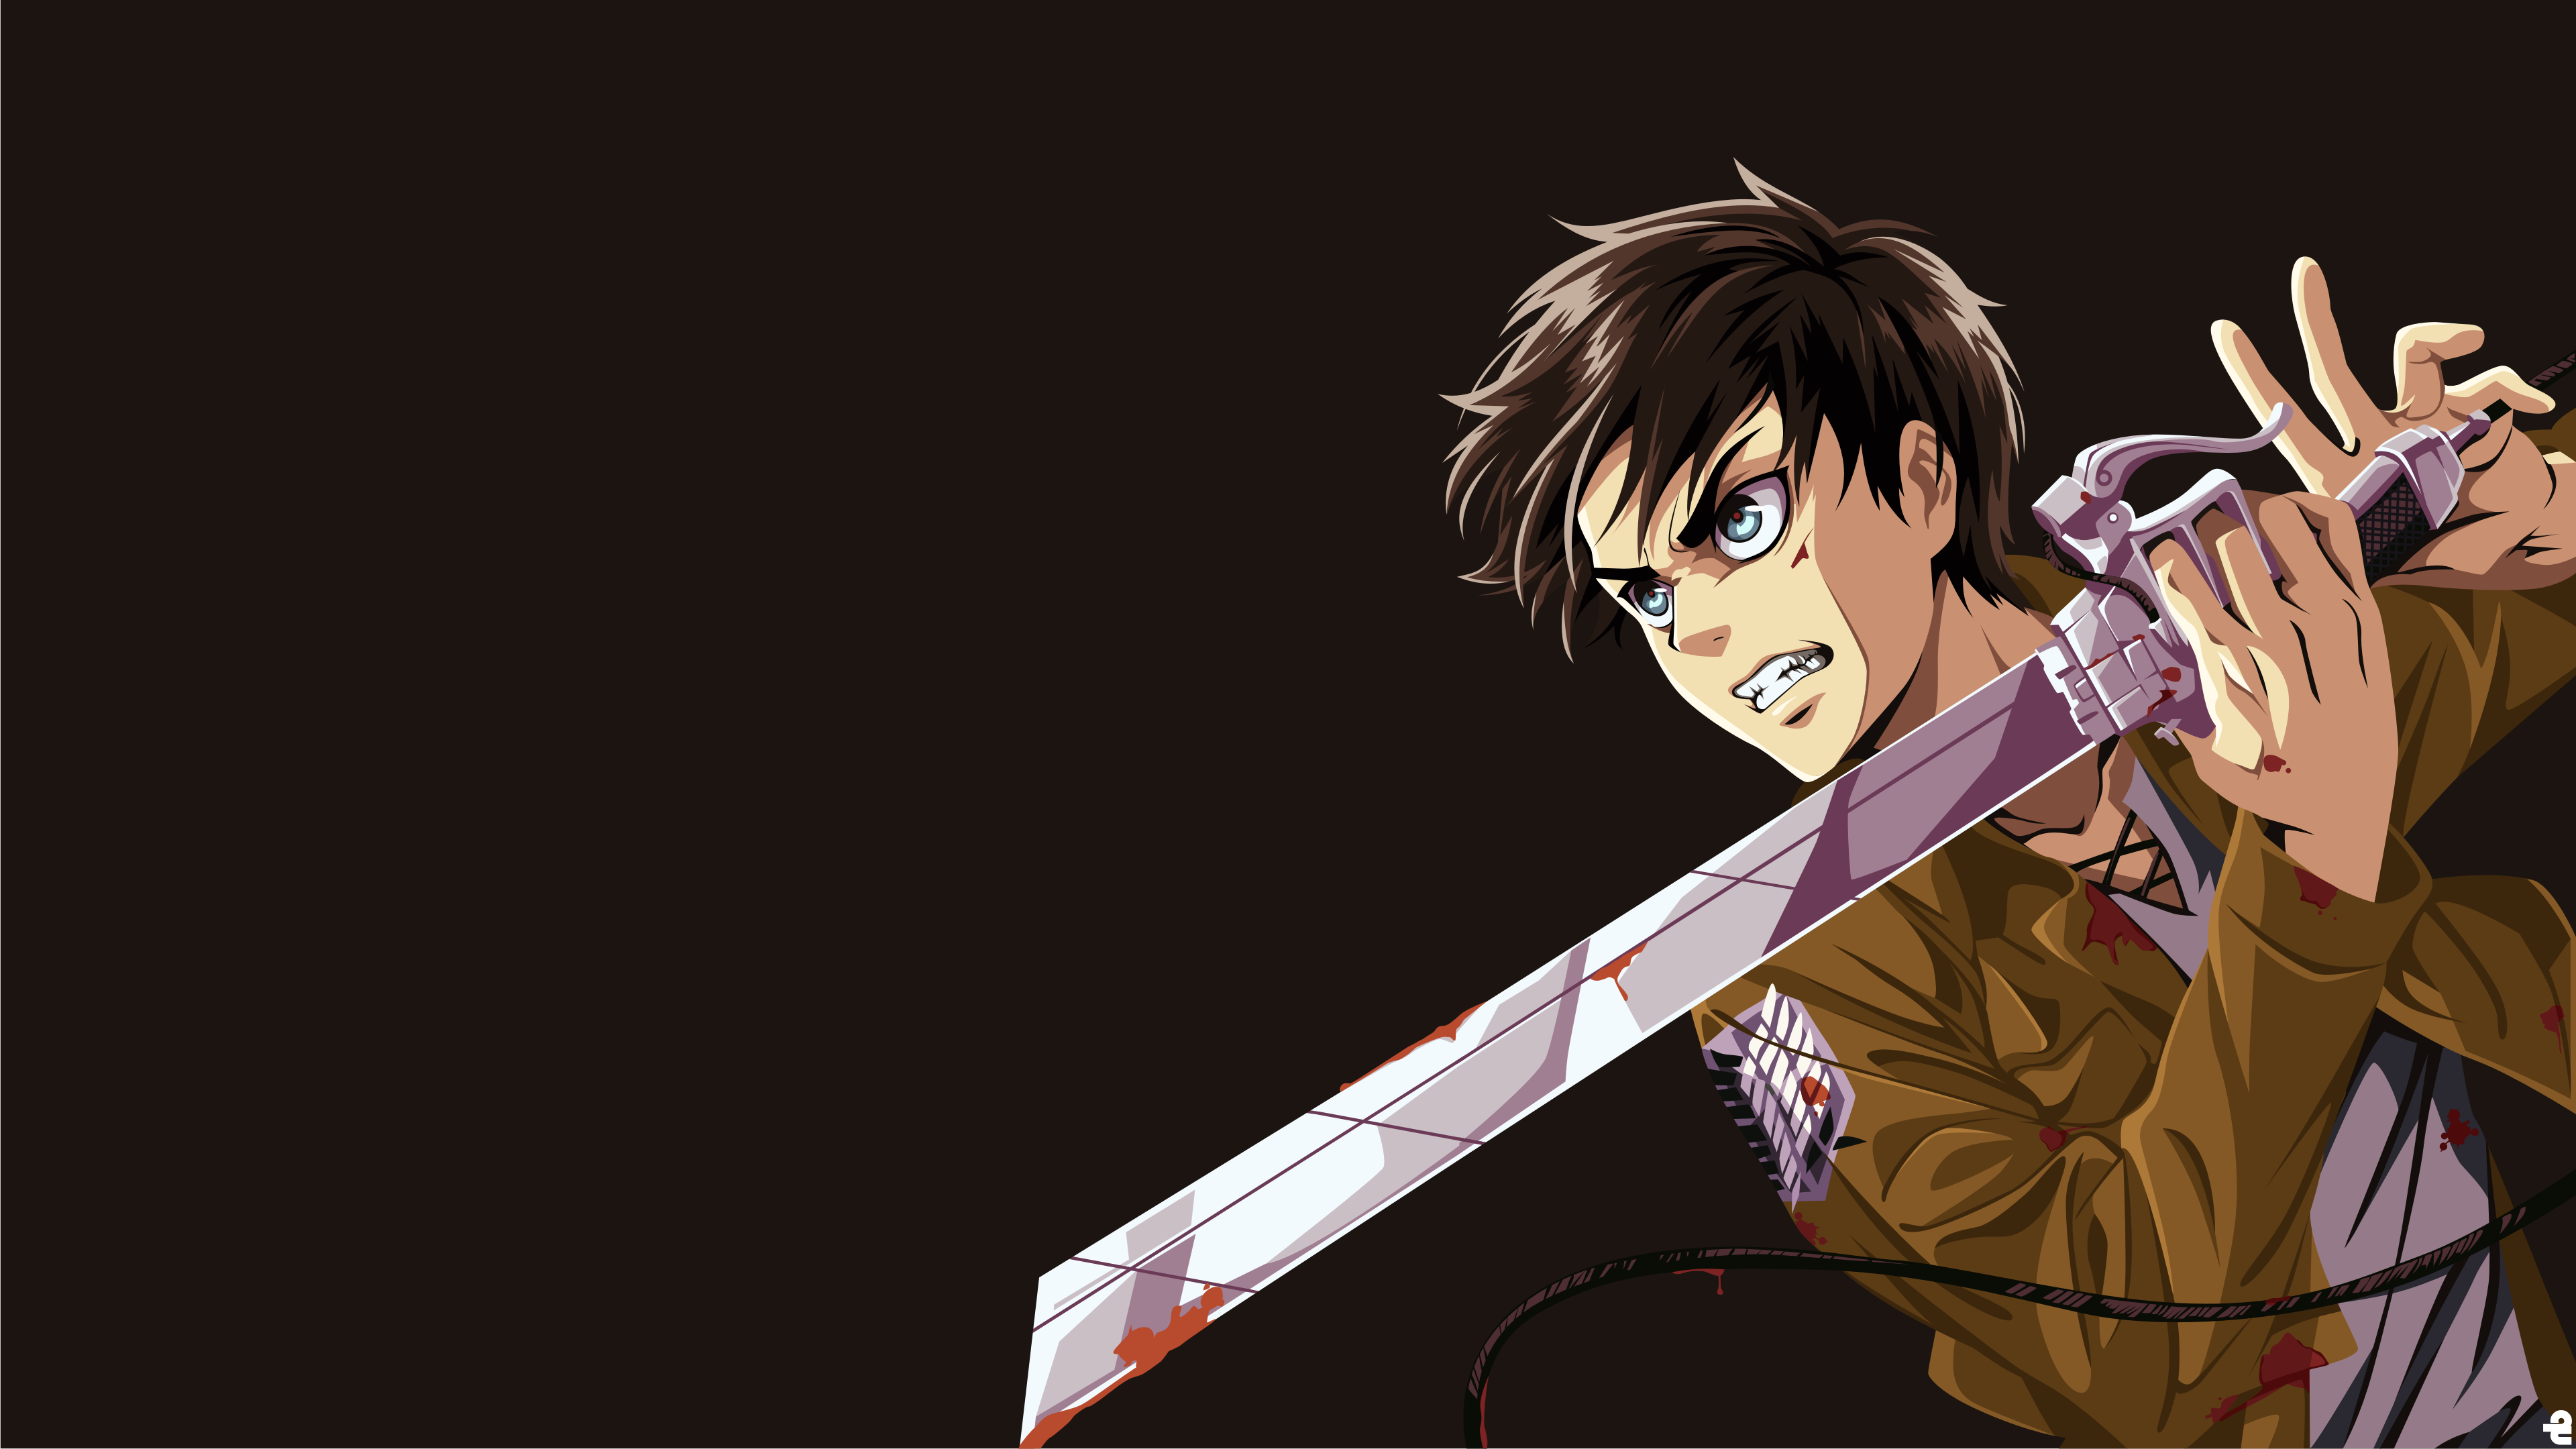 eren yeager shingeki no kyojin 4k ultra hd wallpaper and